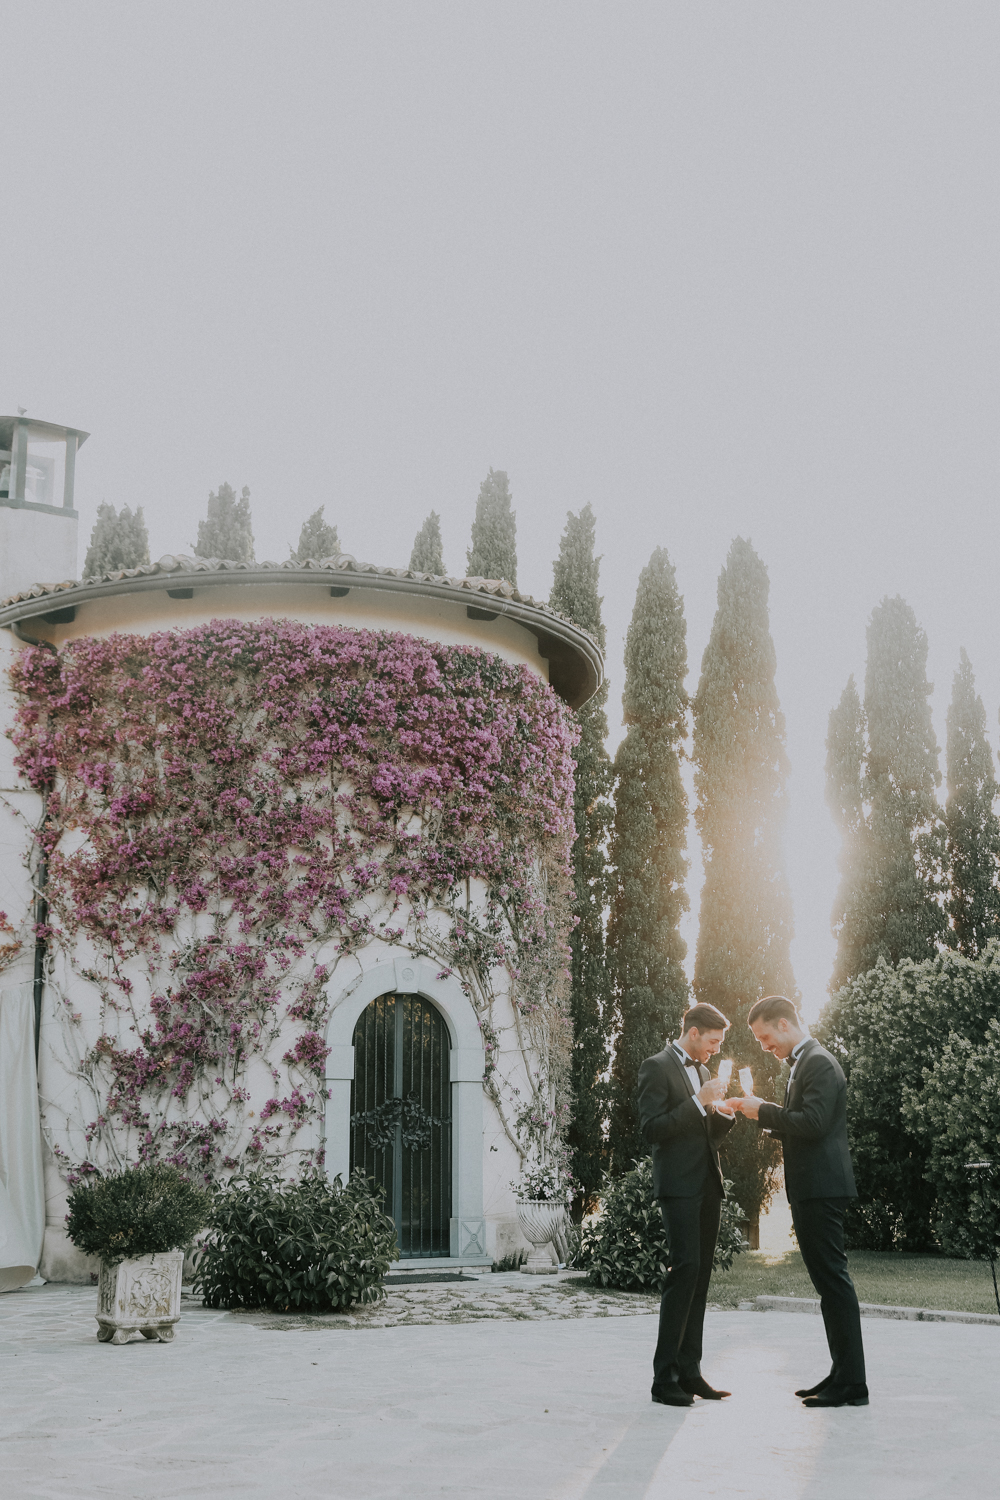 https://www.weddingamalfi.com/wp-content/uploads/Alessandro-and-Diego-sunny-garden-in-south-of-Italy.jpg